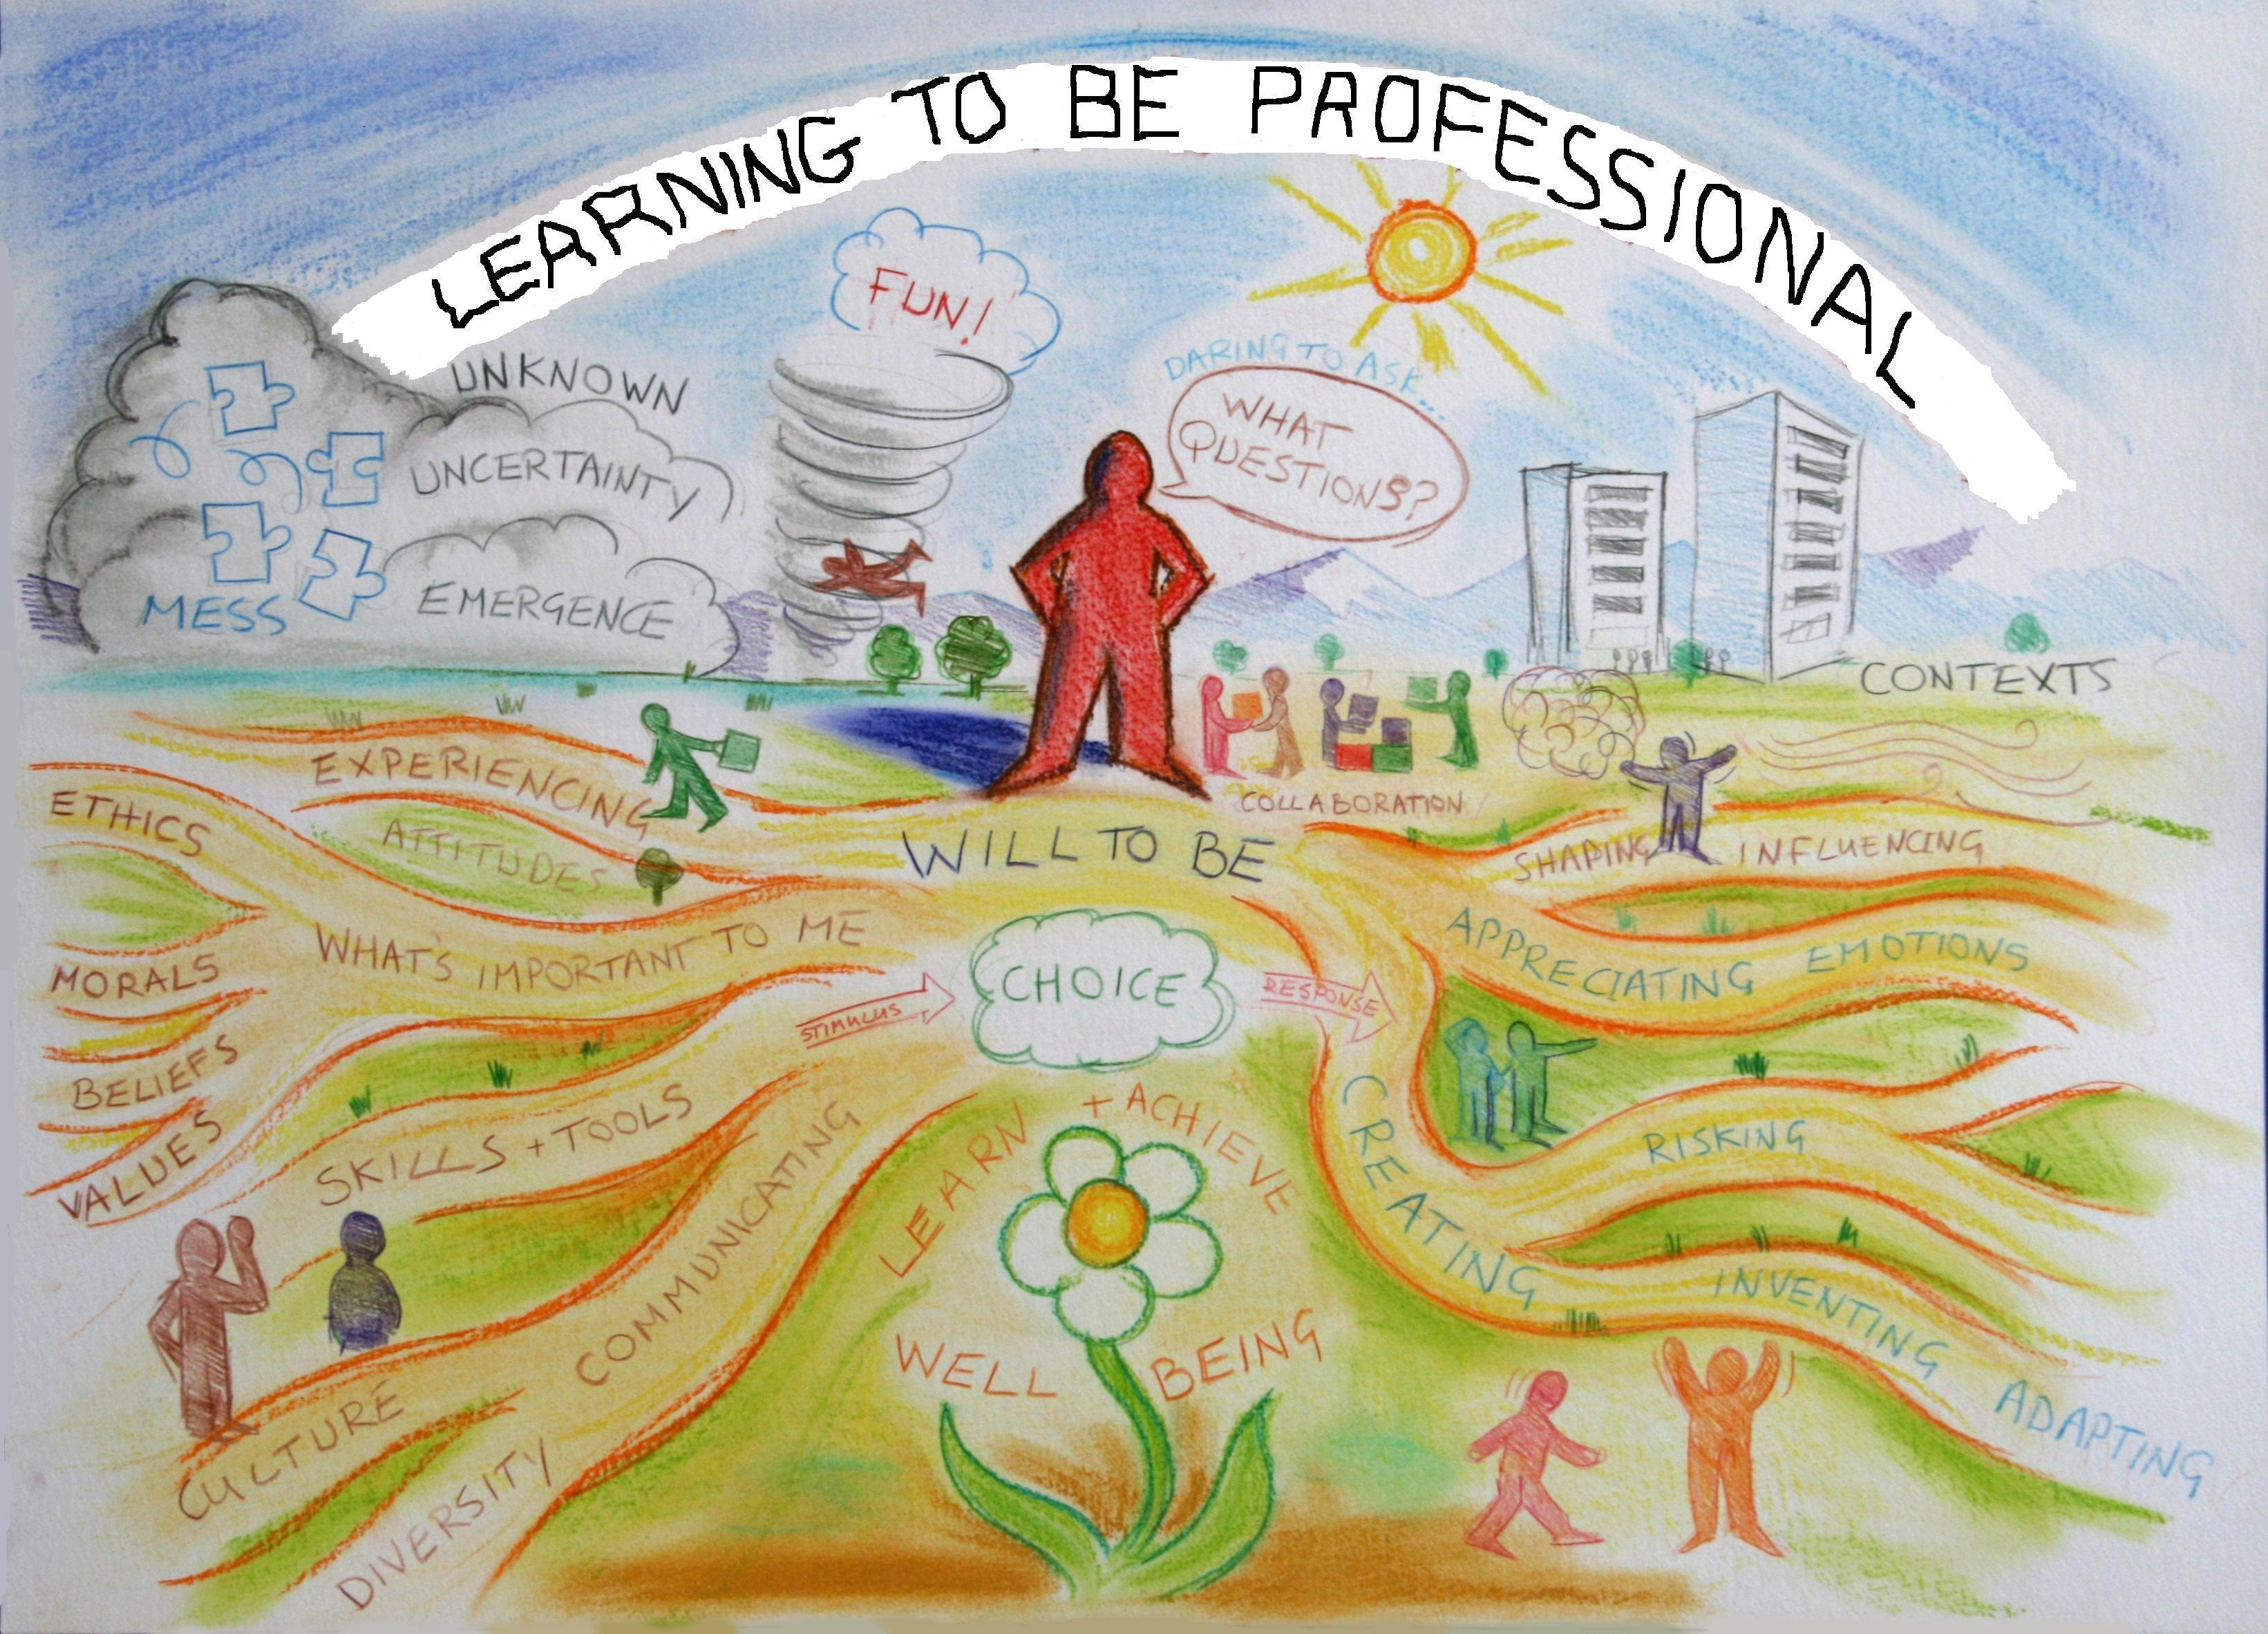 learning to be professional through a life wide curriculum conference